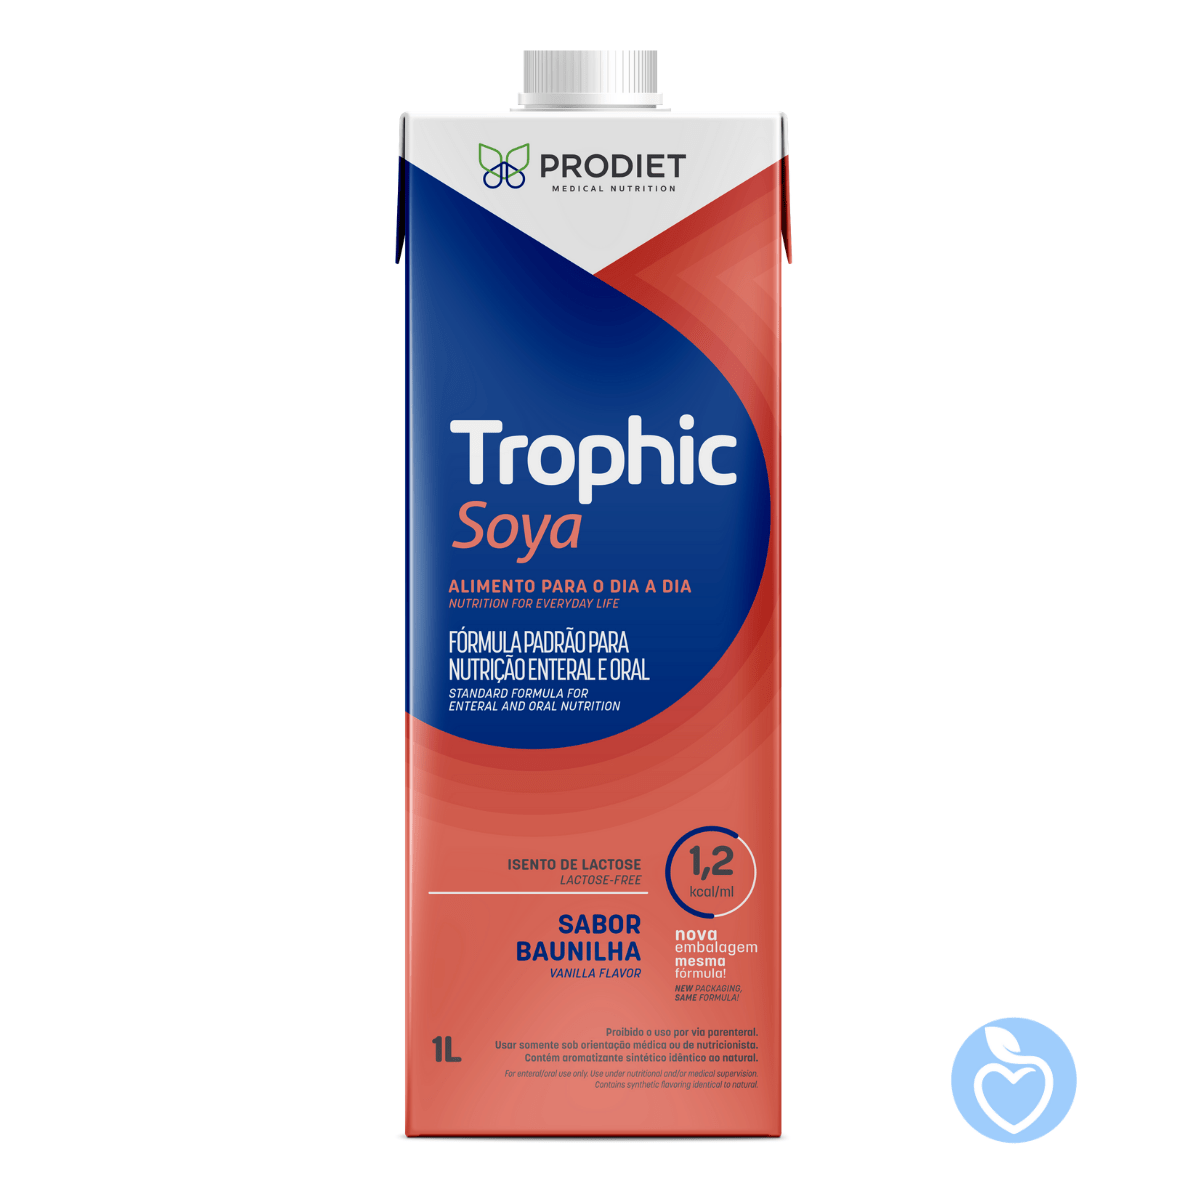 Trophic Soya 1.2 Kcal - 1000 ml